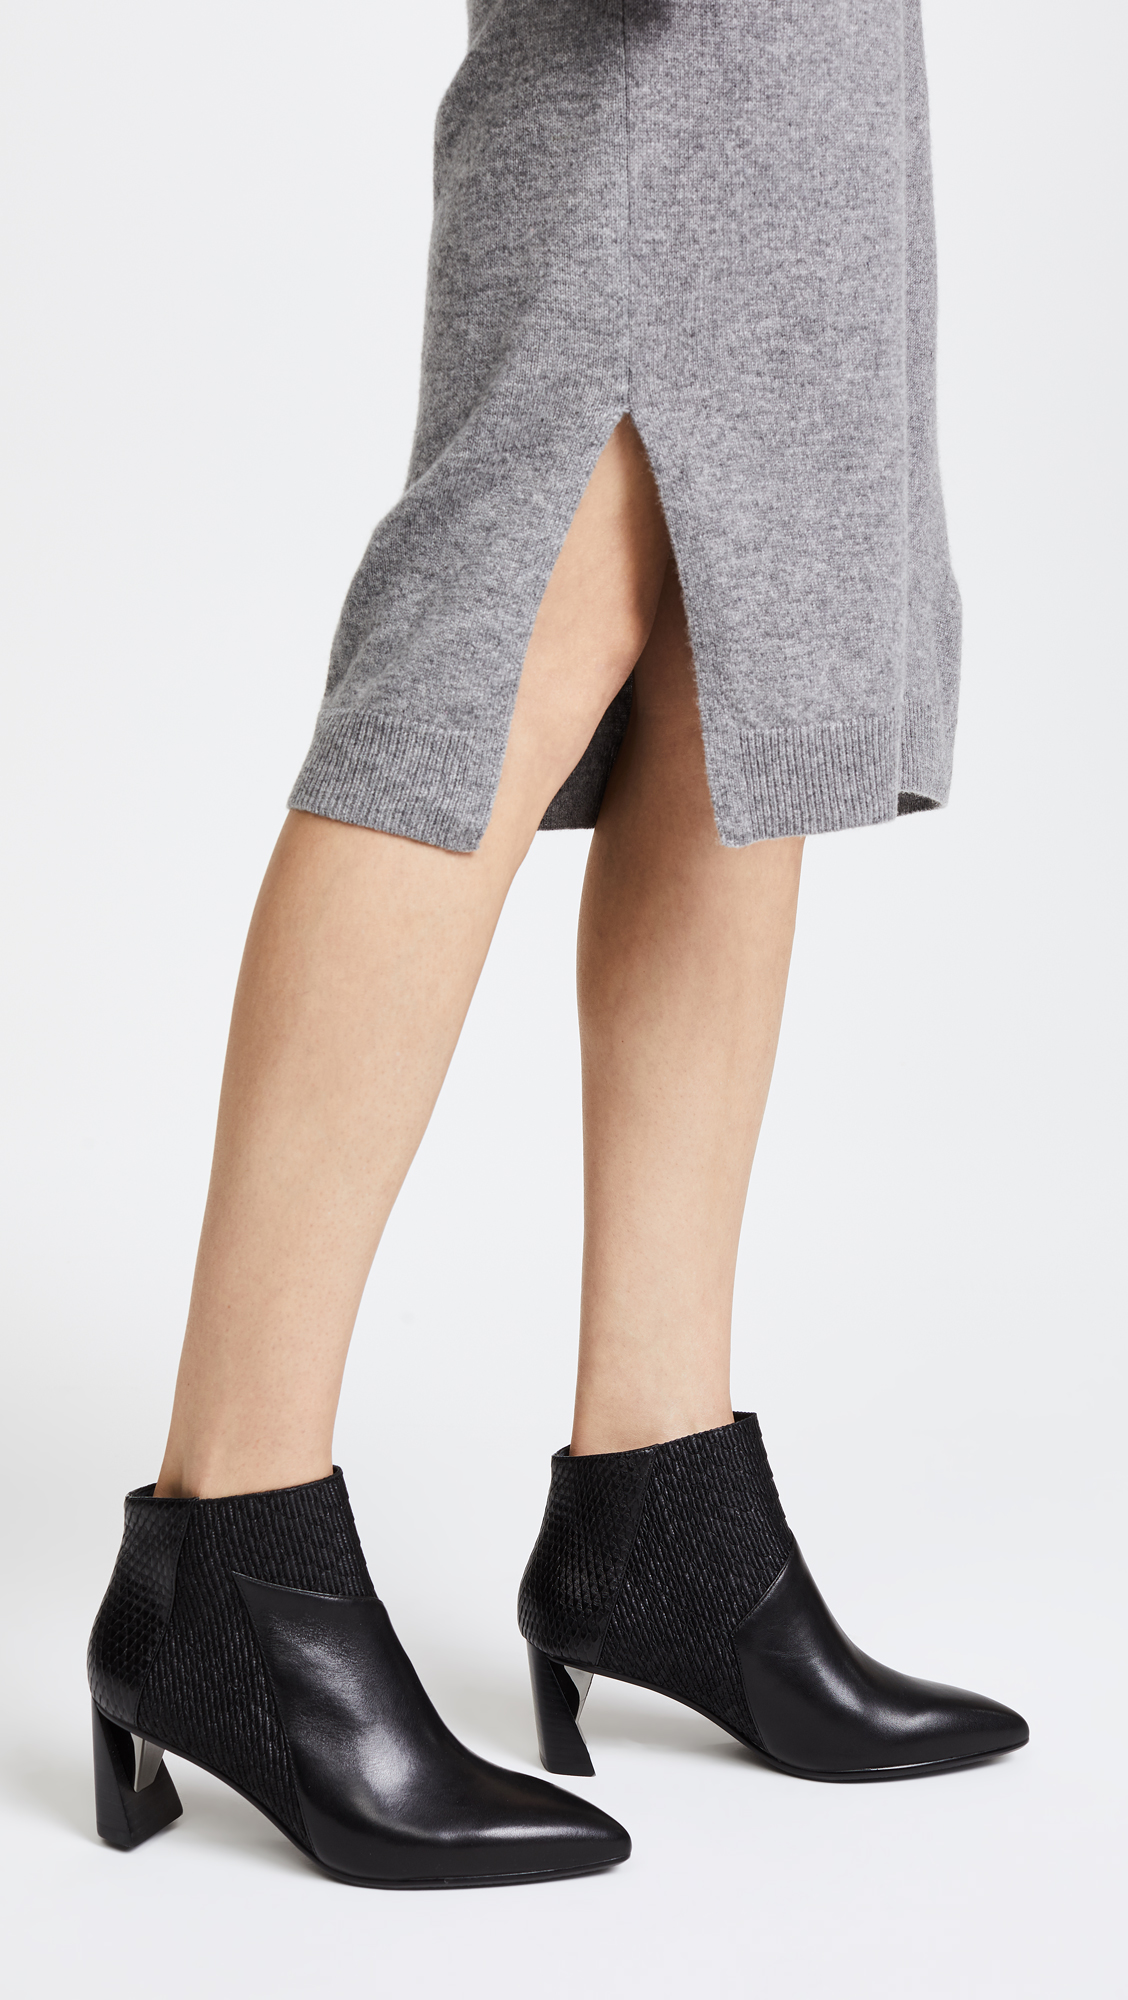 United nude Boots ZINK MID United nude soldes VFAHYPxh